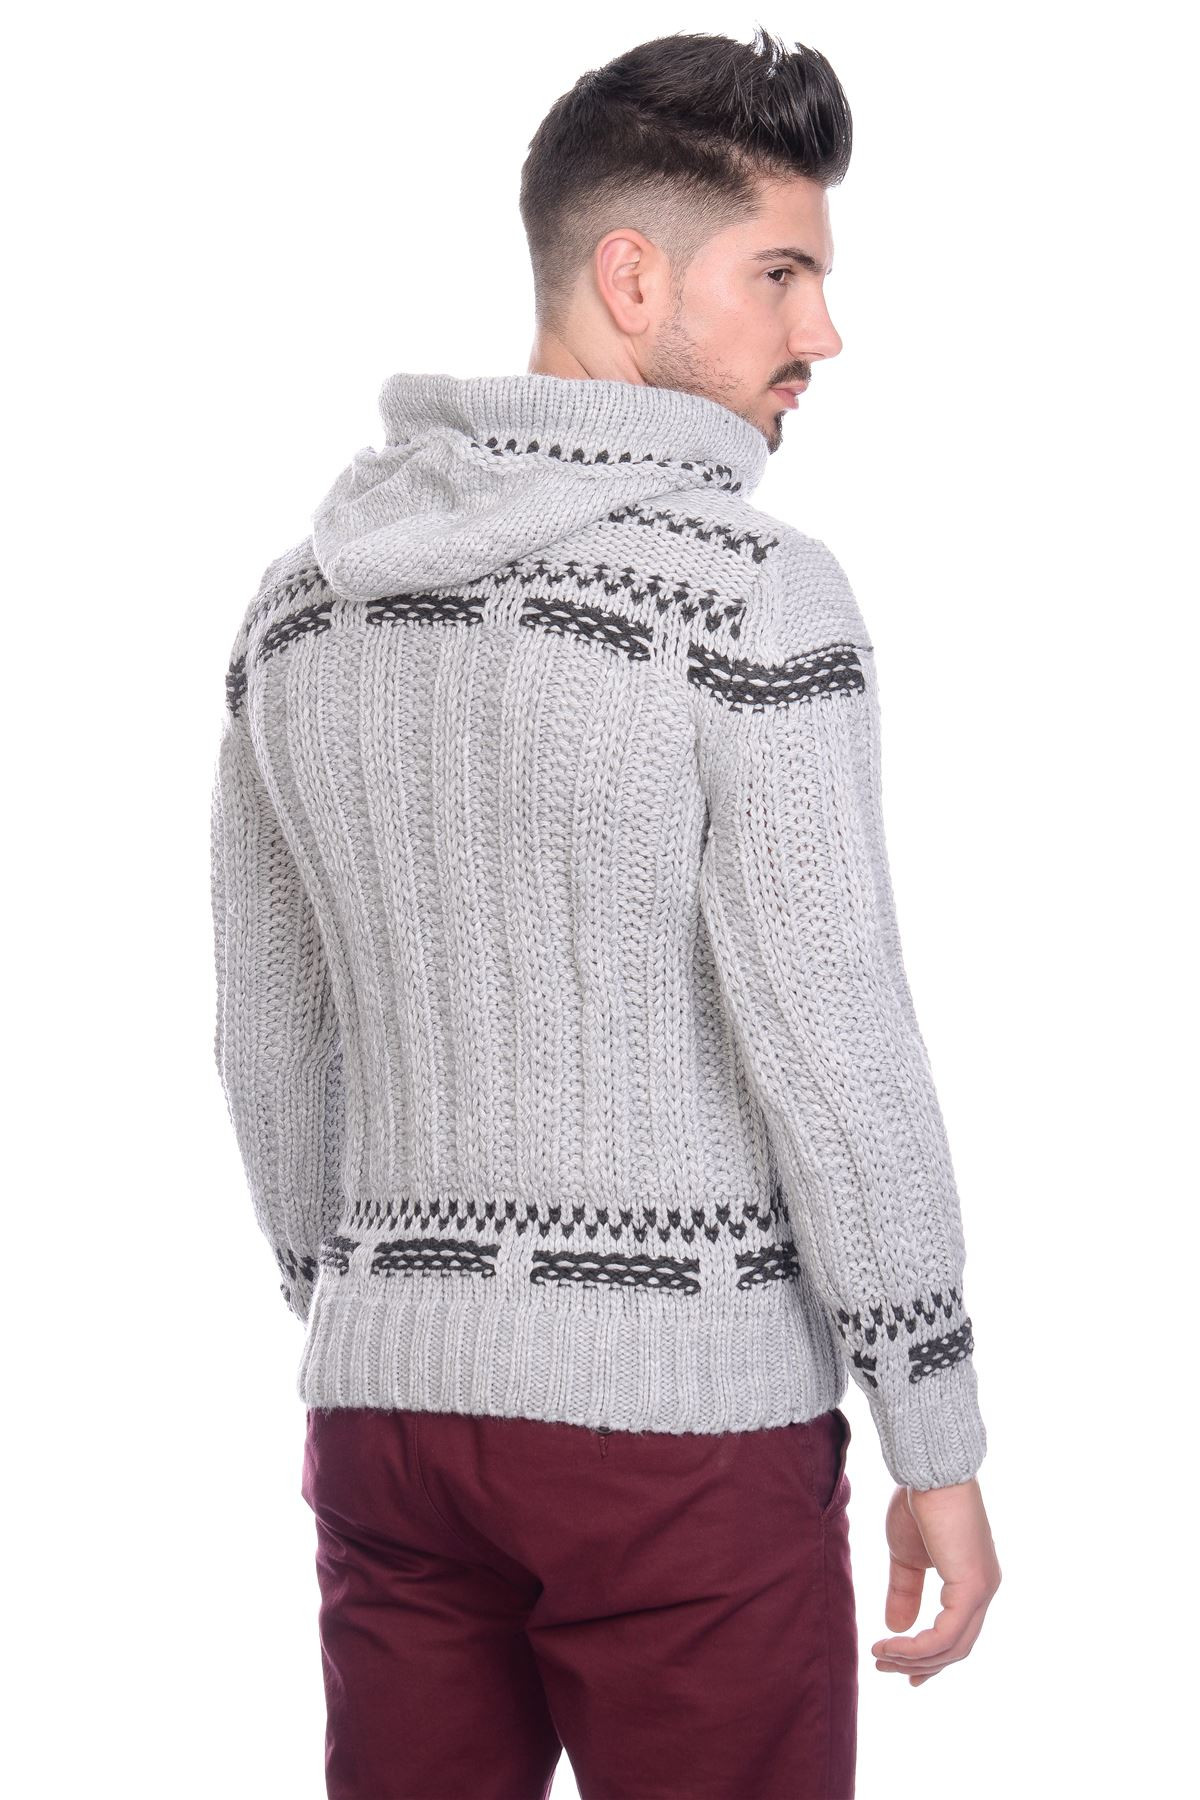 Mens Cable Knit Cardigan Inspirational Thick Cable Knit Sweater Mens Bronze Cardigan Of New 45 Models Mens Cable Knit Cardigan